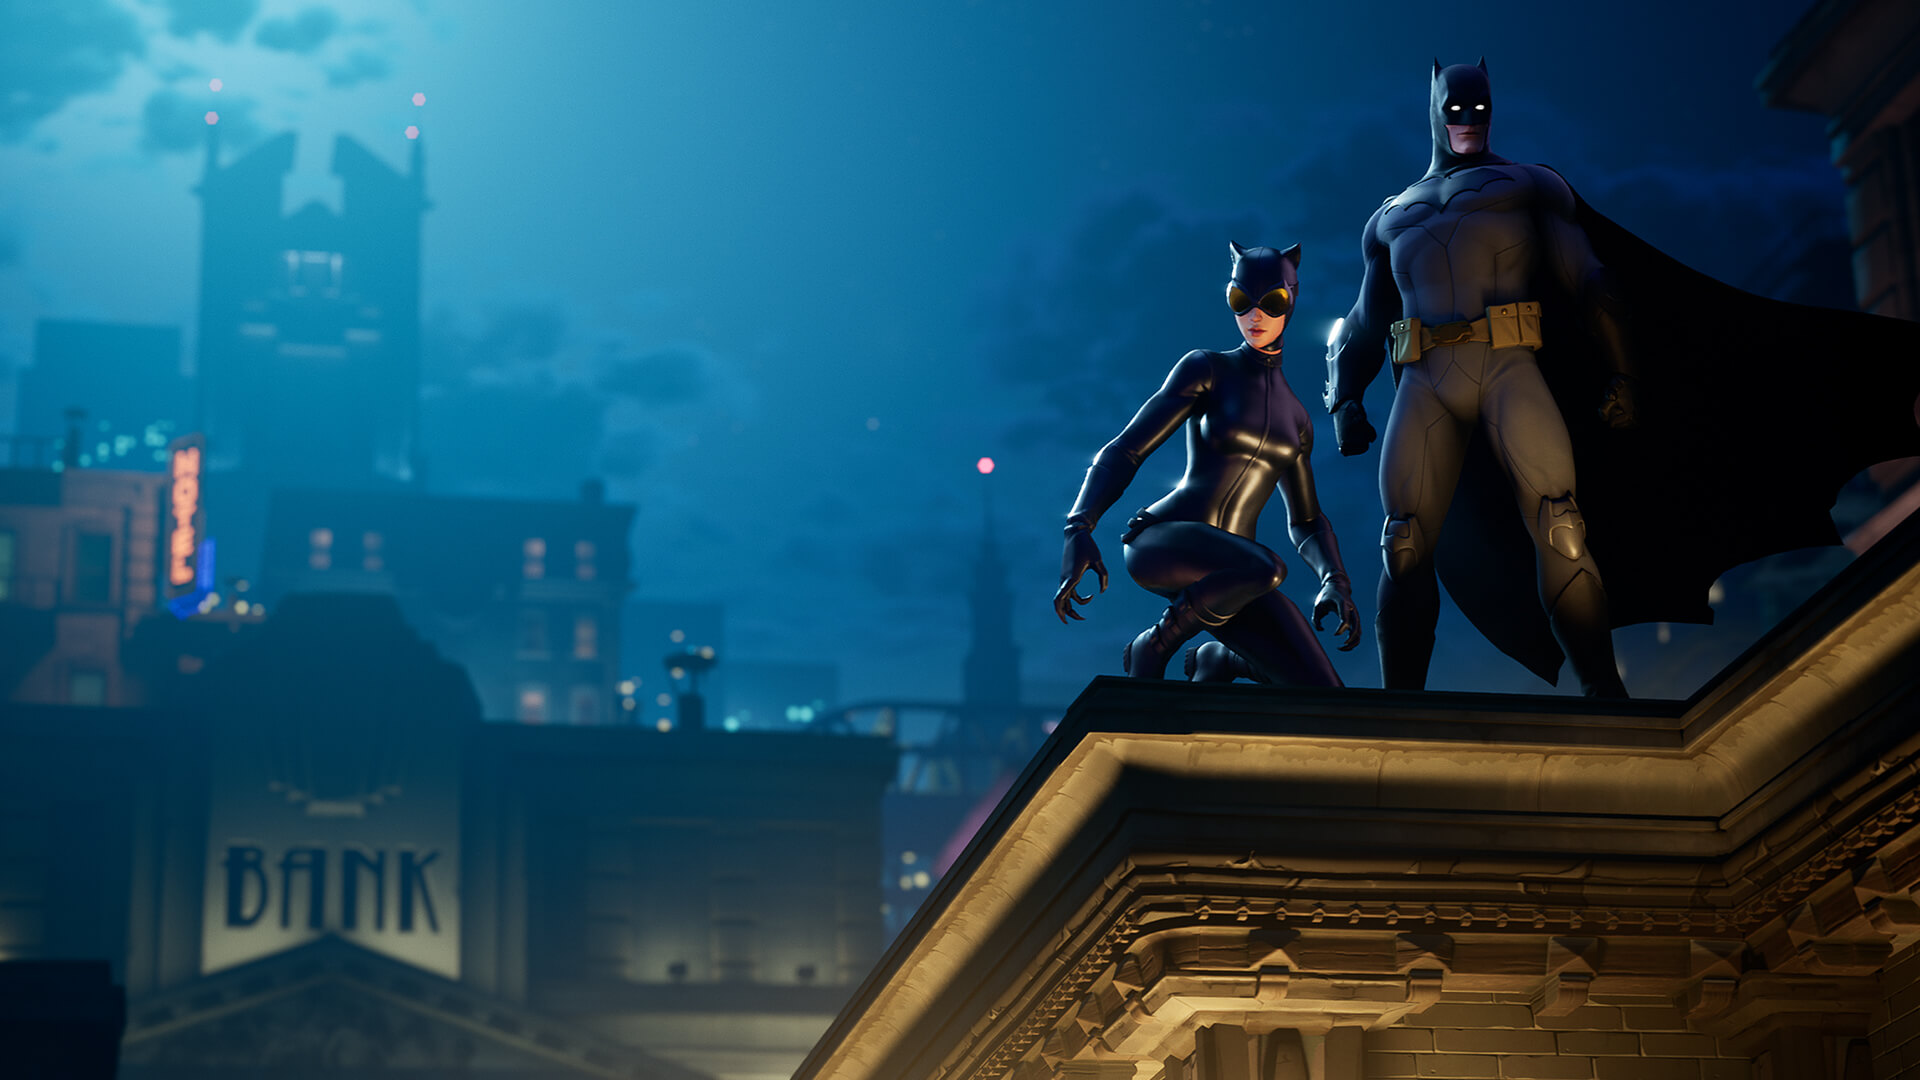 'Fortnite' heads to Gotham City in new Fortnite x Batman event